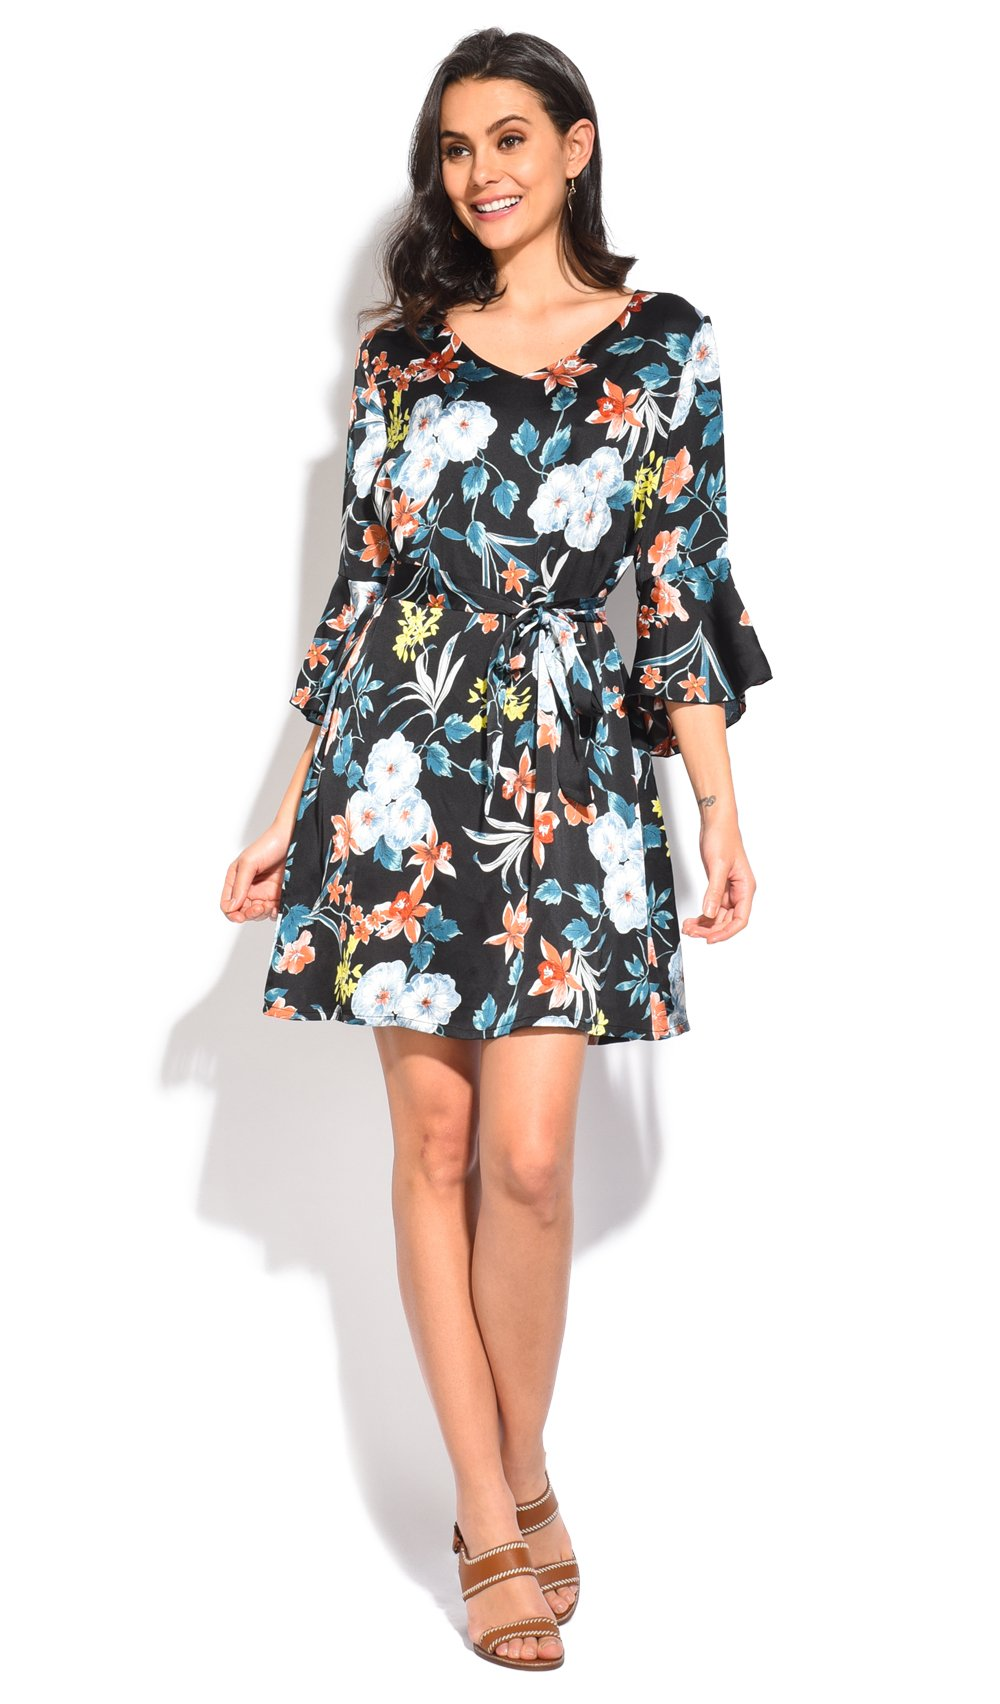 SHORT BELTED DRESS WITH FLORAL PRINT AND HALF RUFFLED SLEEVES